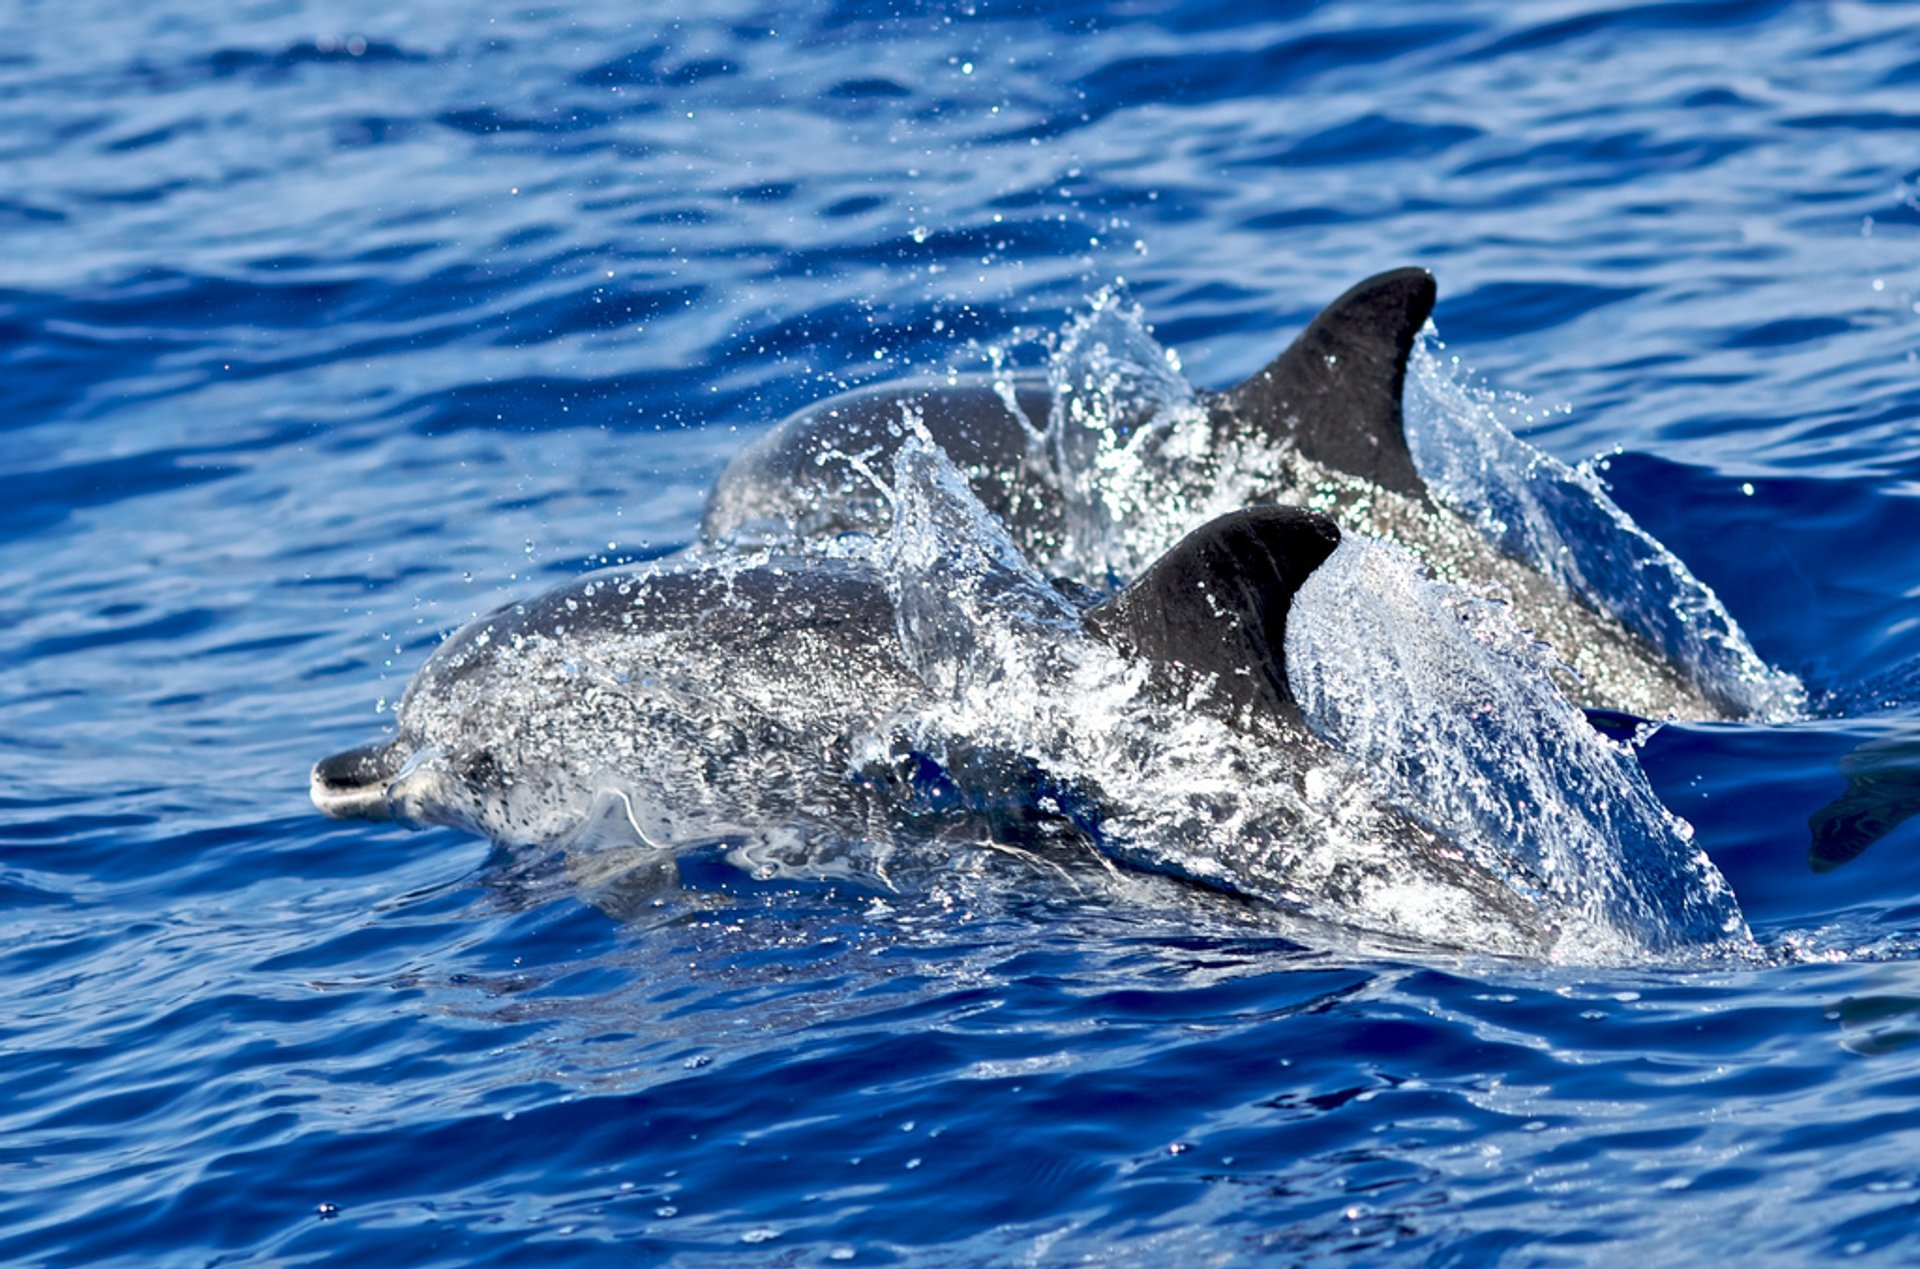 Whale and Dolphin Watching in Madeira 2020 - Best Time